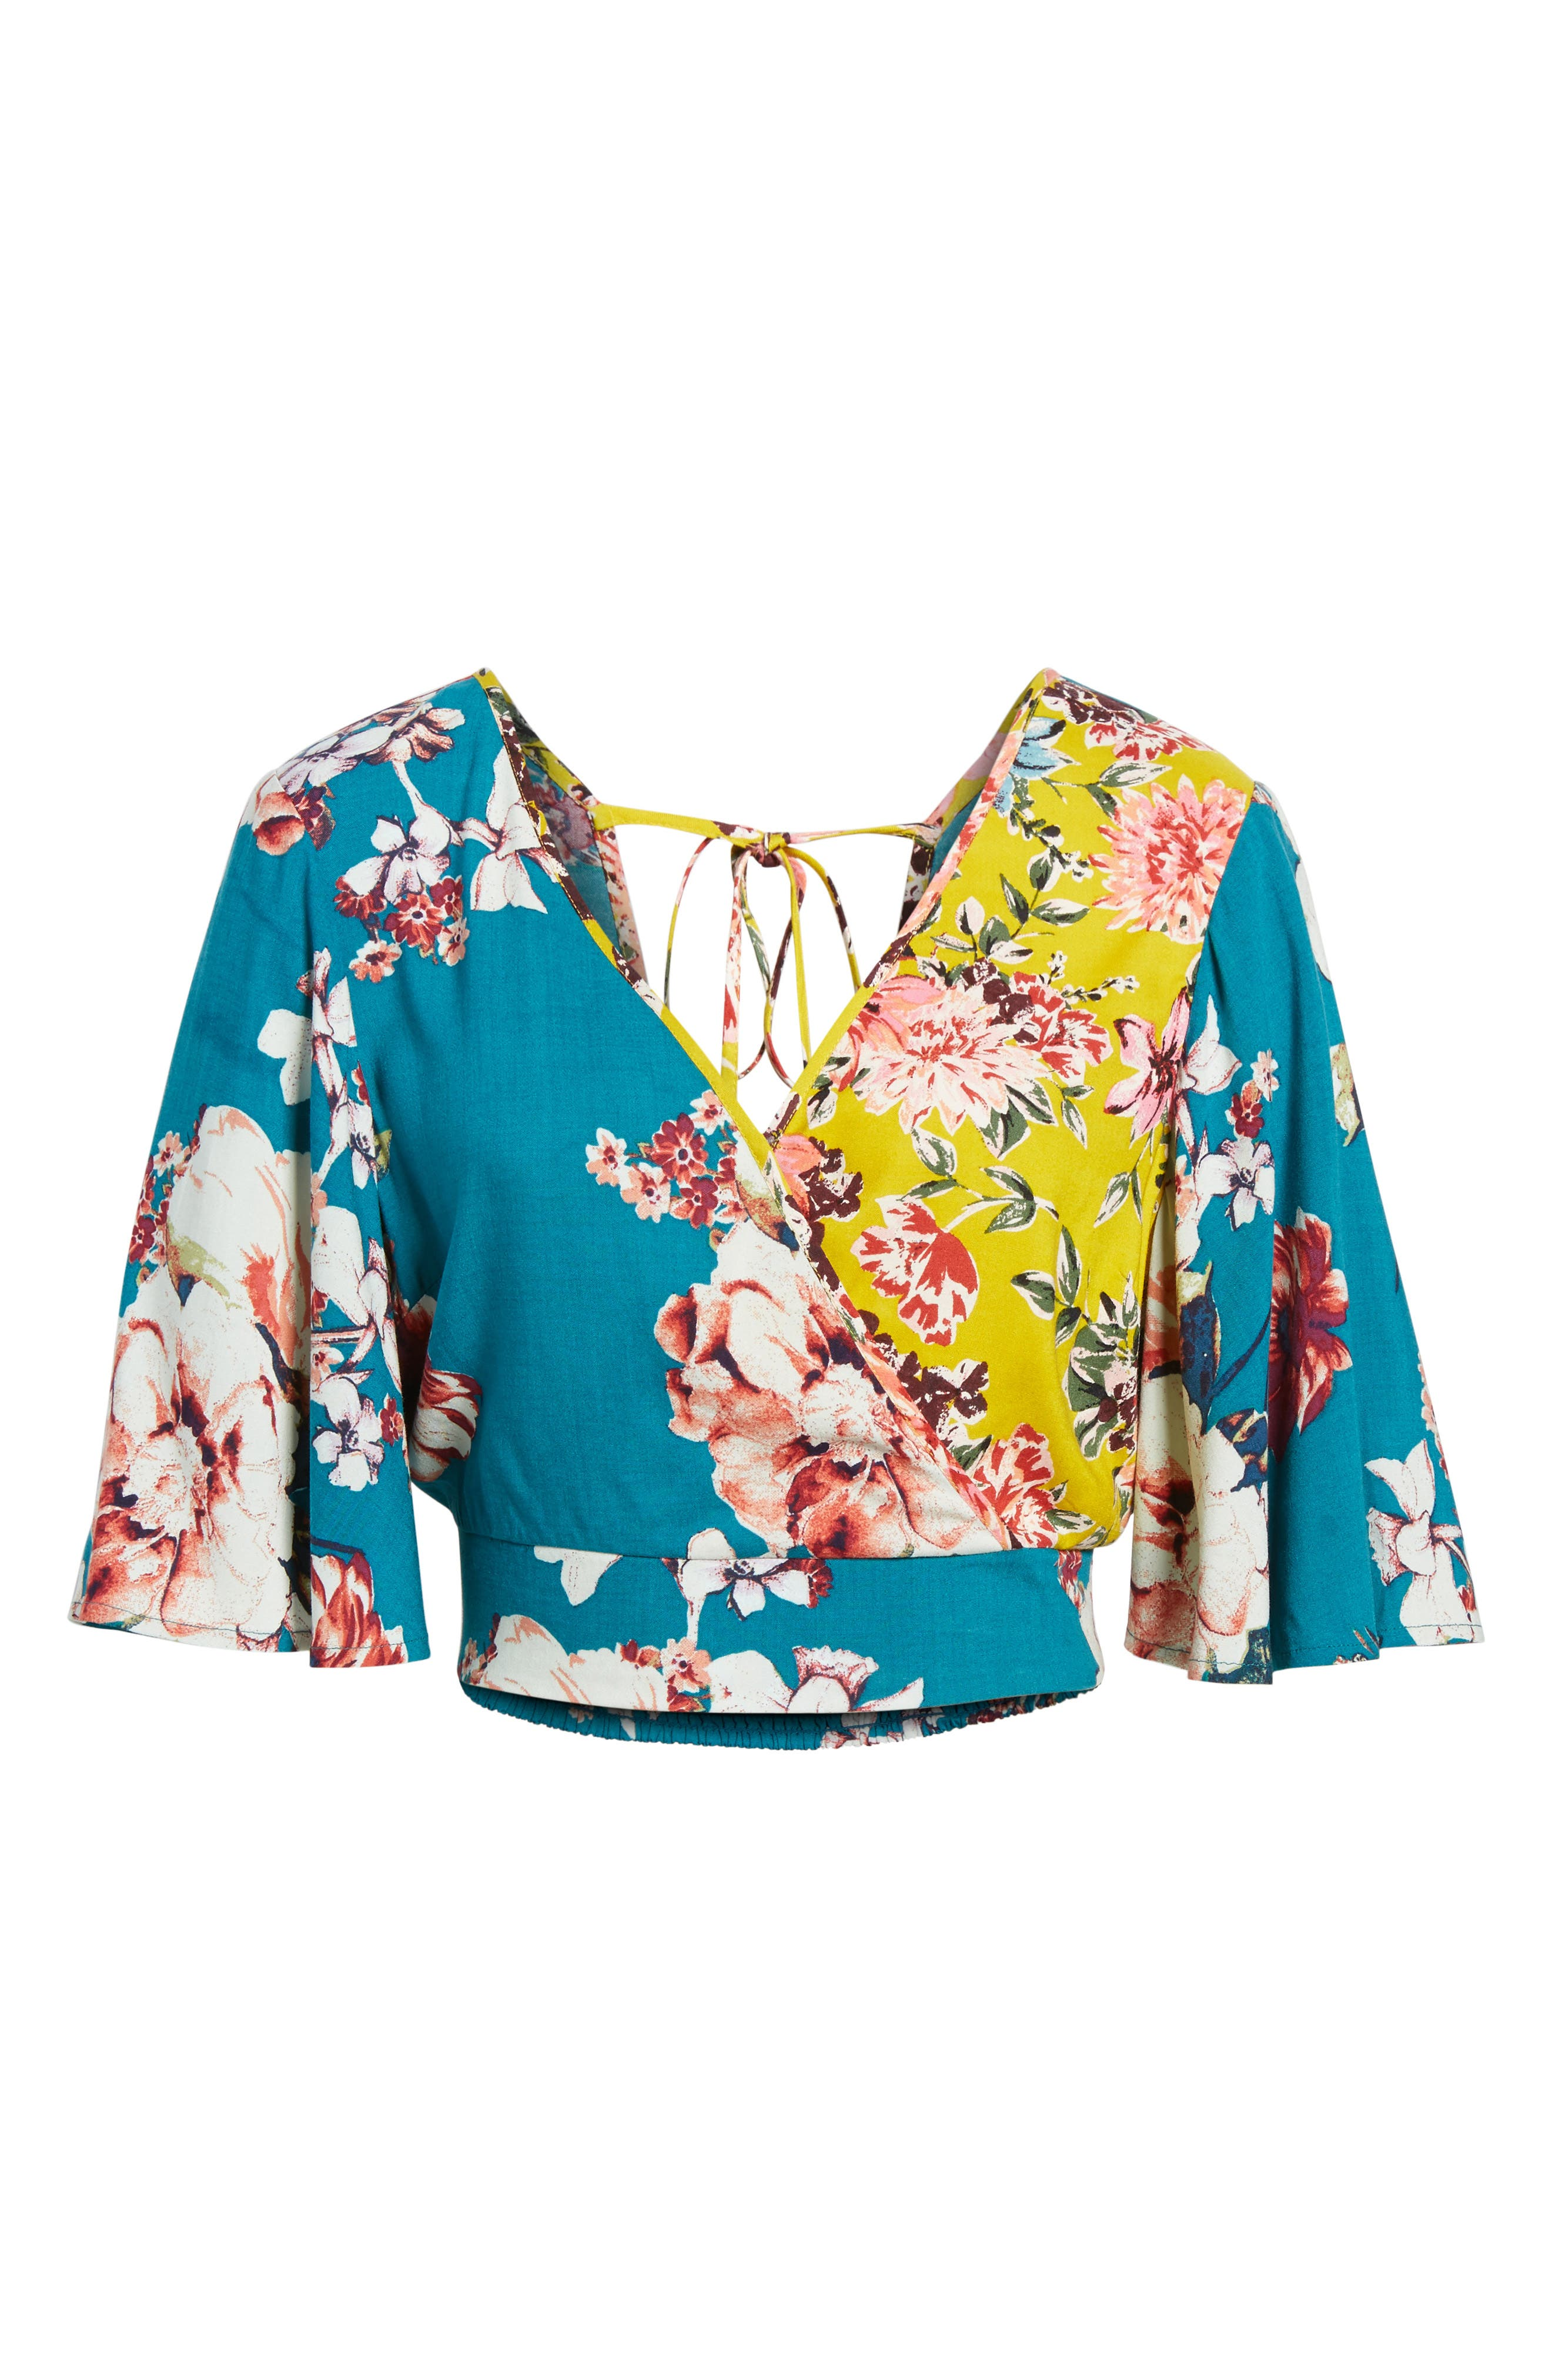 Mix Floral Crop Top,                             Alternate thumbnail 8, color,                             Teal/ Peach